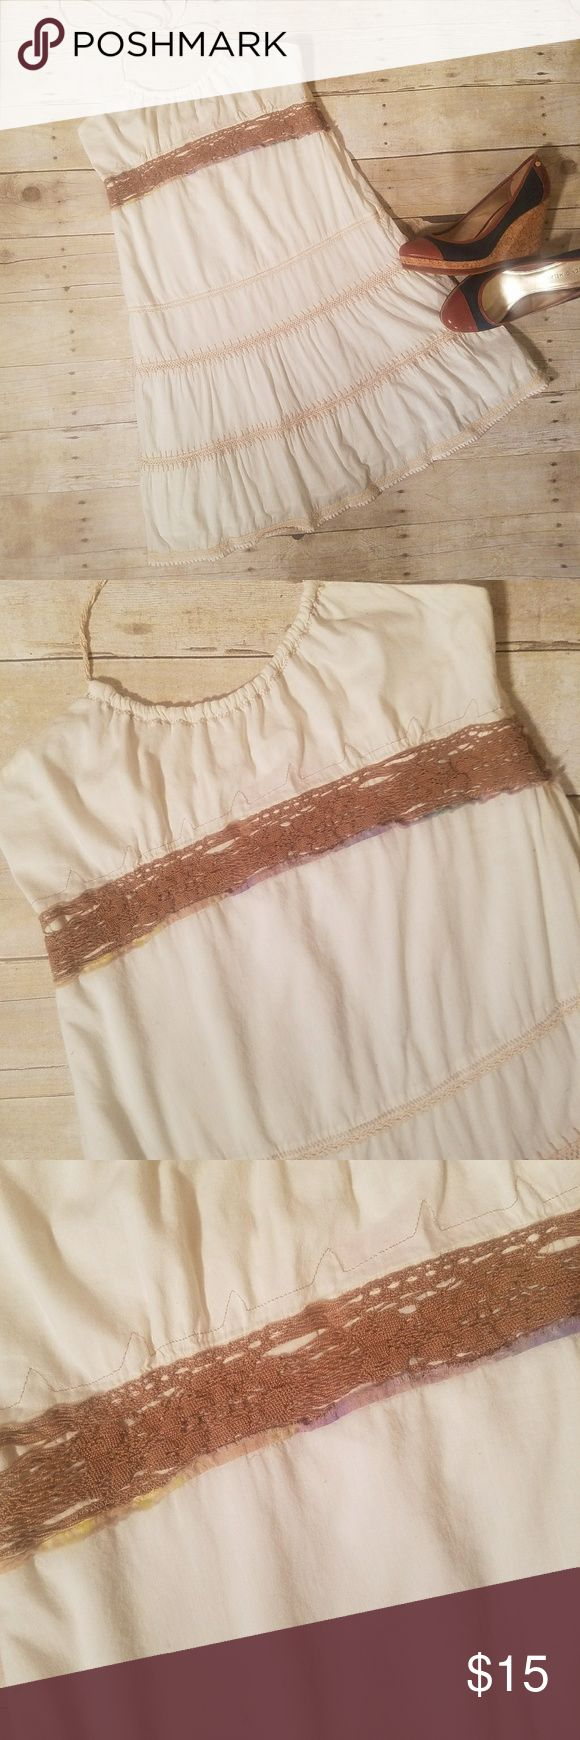 UO Lux Sz 5 white tiered halter sundress Adorable Lux sundress in white with brown stitching and detail. Flaws: label has fallen off, attached currently with pin. Zipper will not go further down than shown. Urban Outfitters Dresses Midi